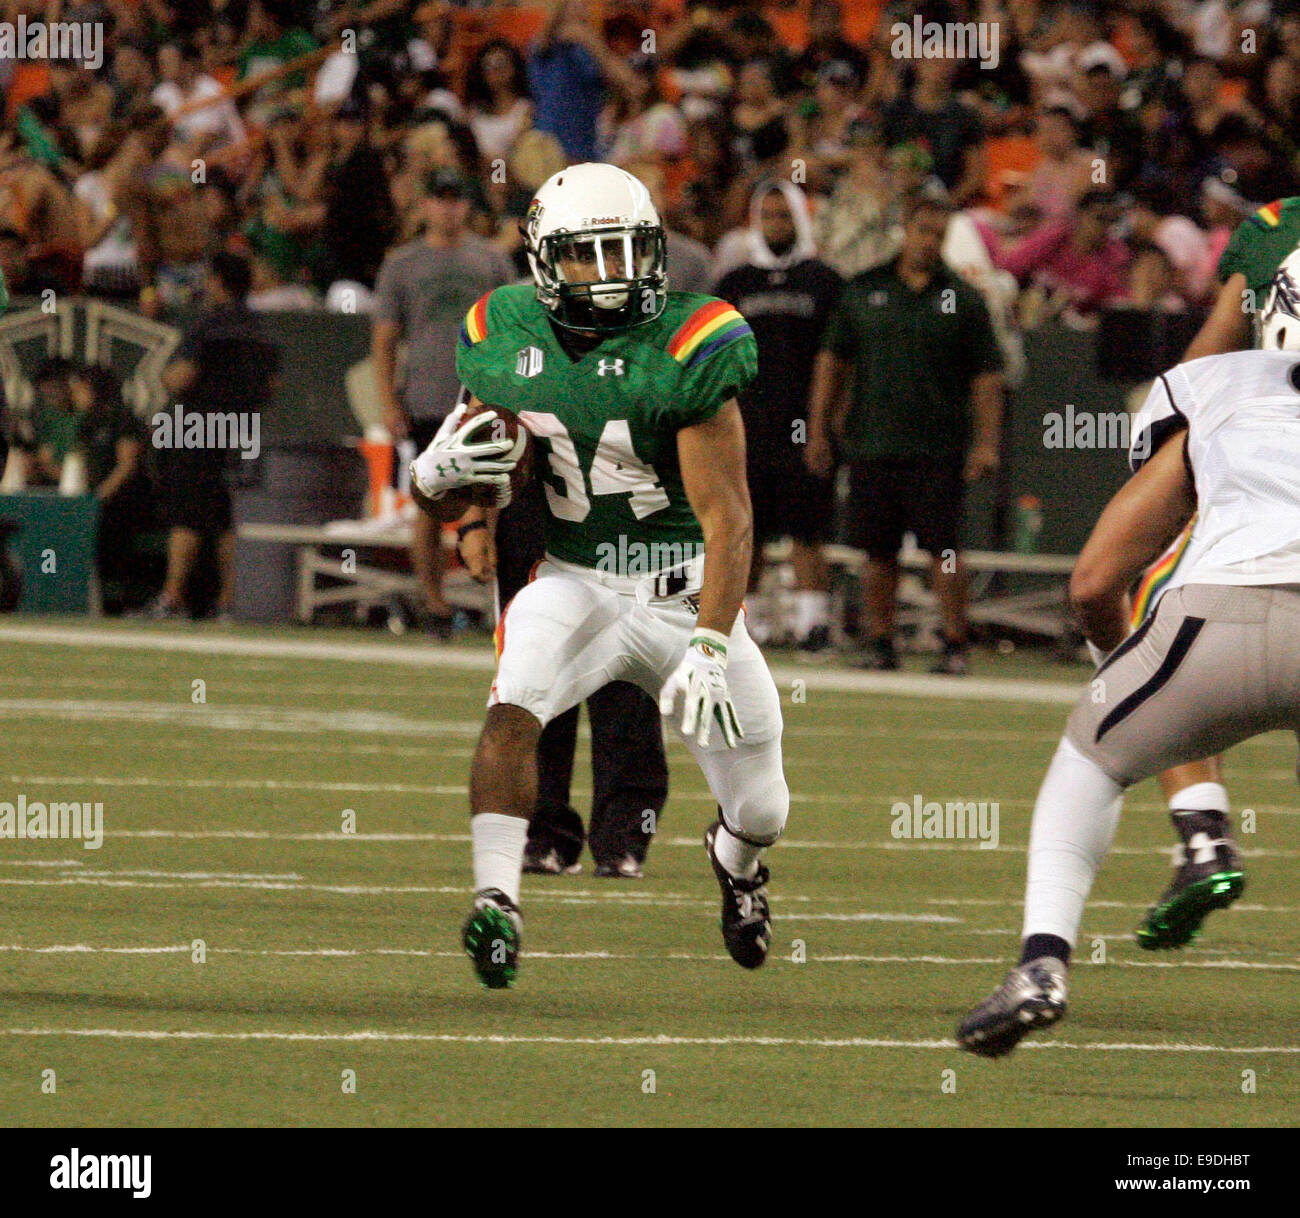 October 25, 2014 - Hawaii Rainbow Warriors defensive back Anthony Pierce (34) during action between the Hawaii Rainbow - Stock Image